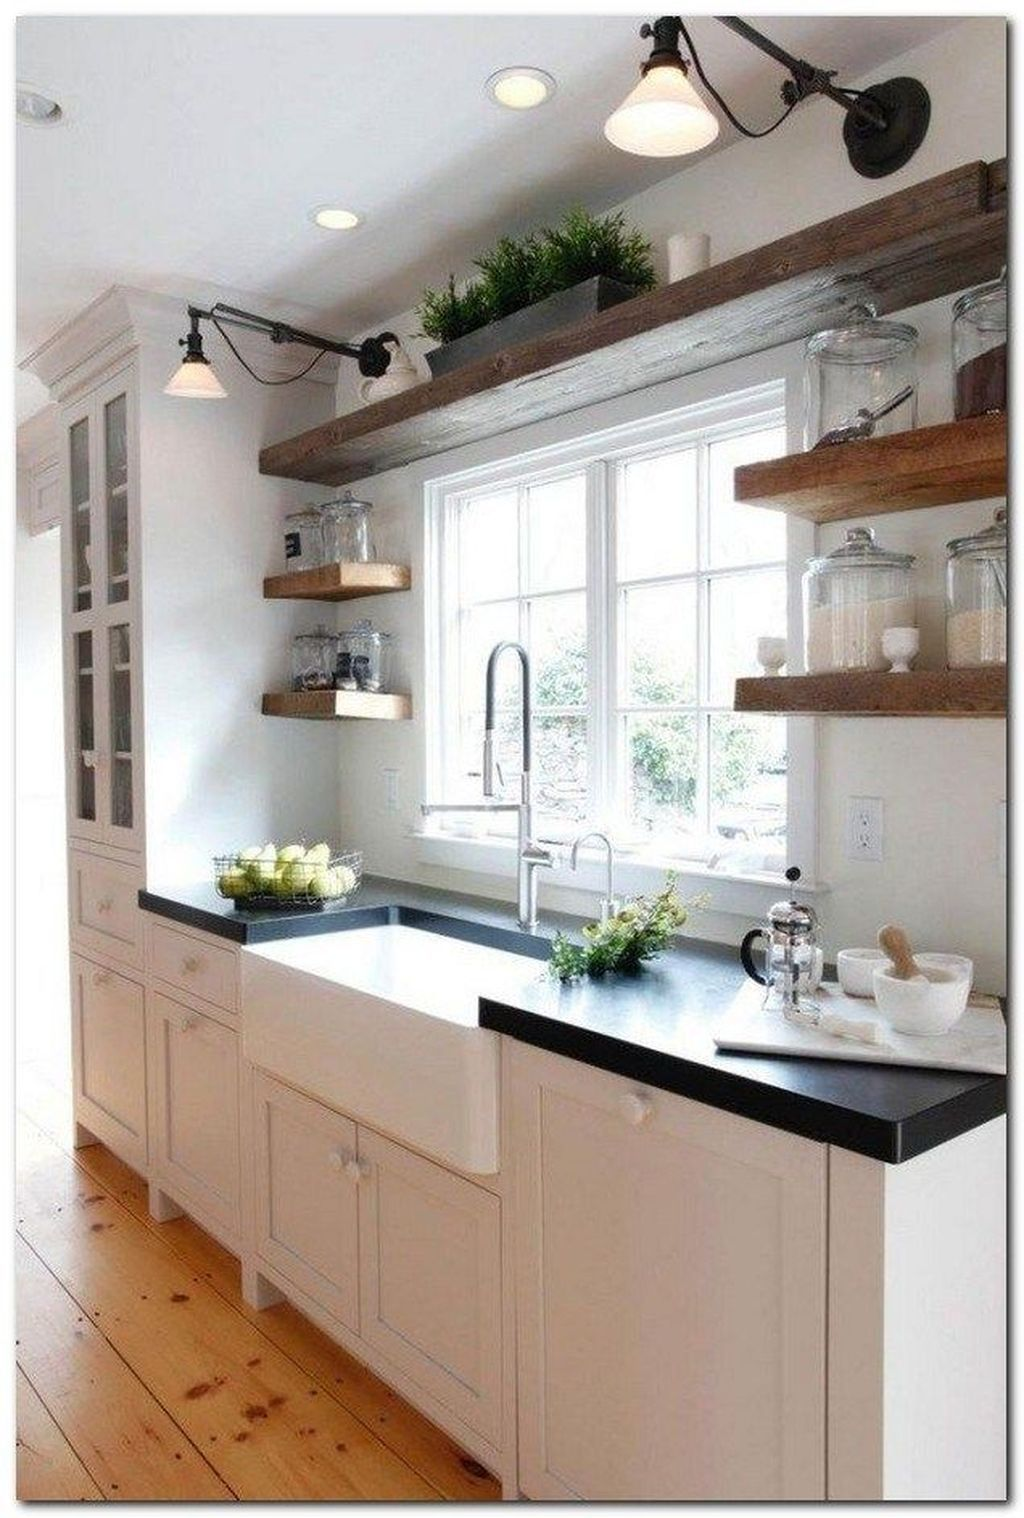 42 Adorable Small Kitchen Remodel Design Ideas On A Budget Kitchen Remodel Design Kitchen Remodel Small Diy Kitchen Remodel